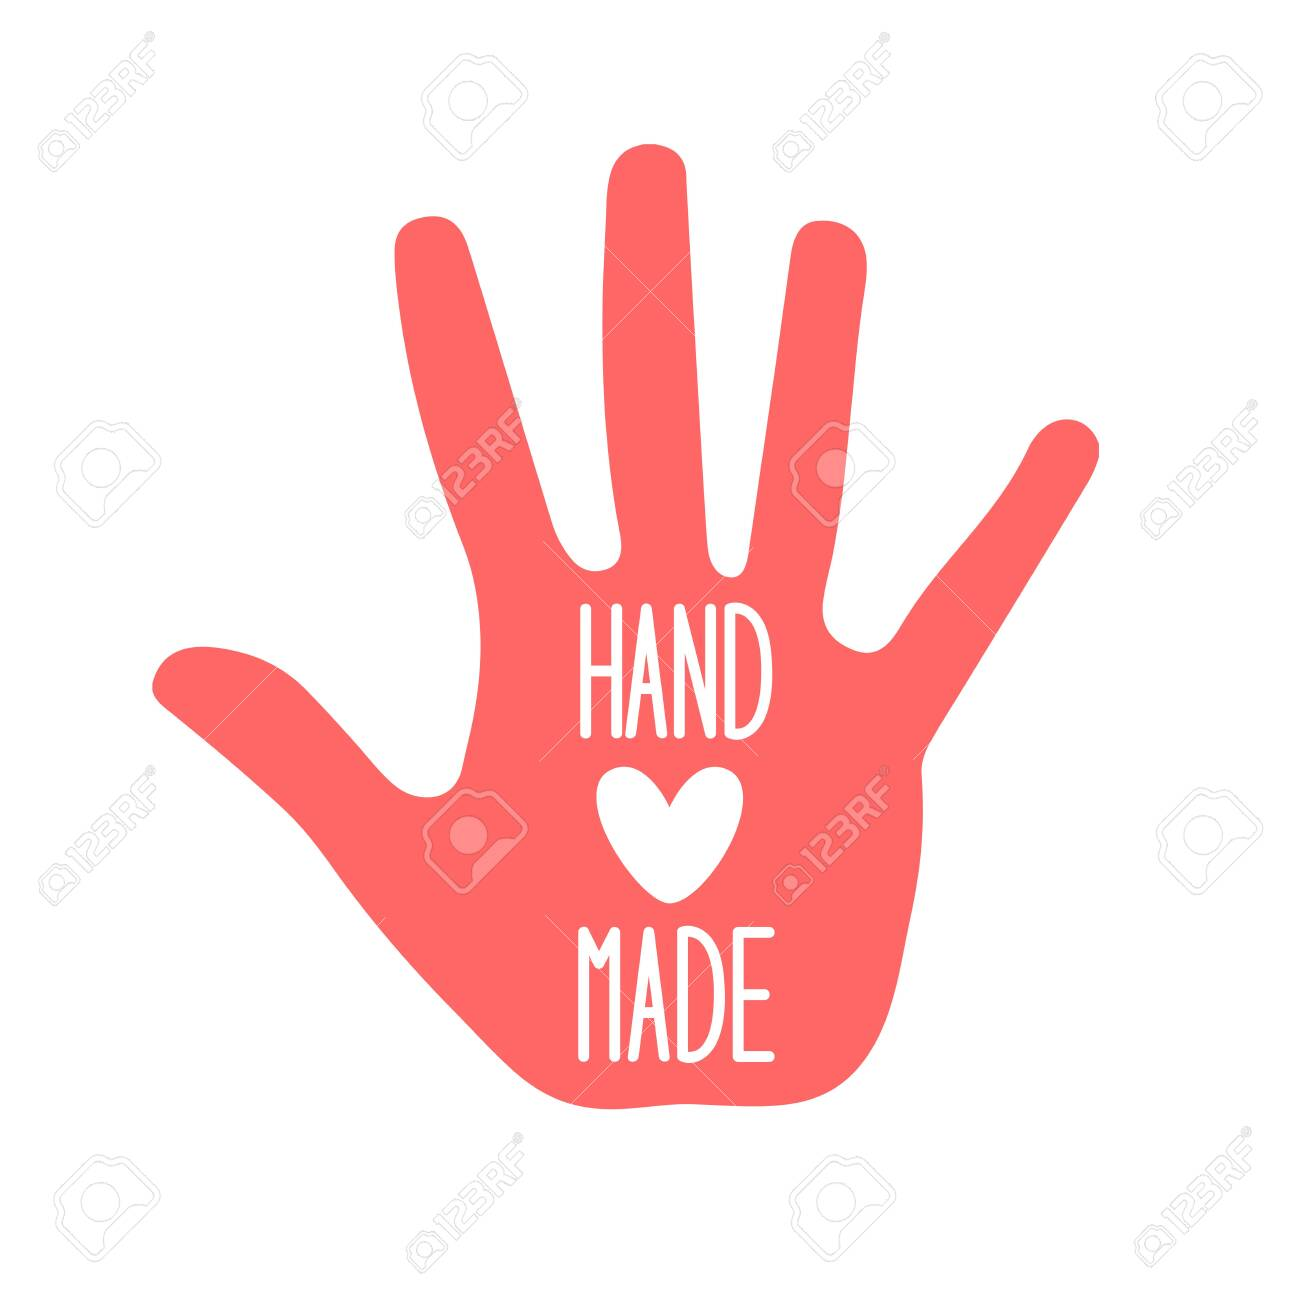 Hand made with heart on white - 141031544